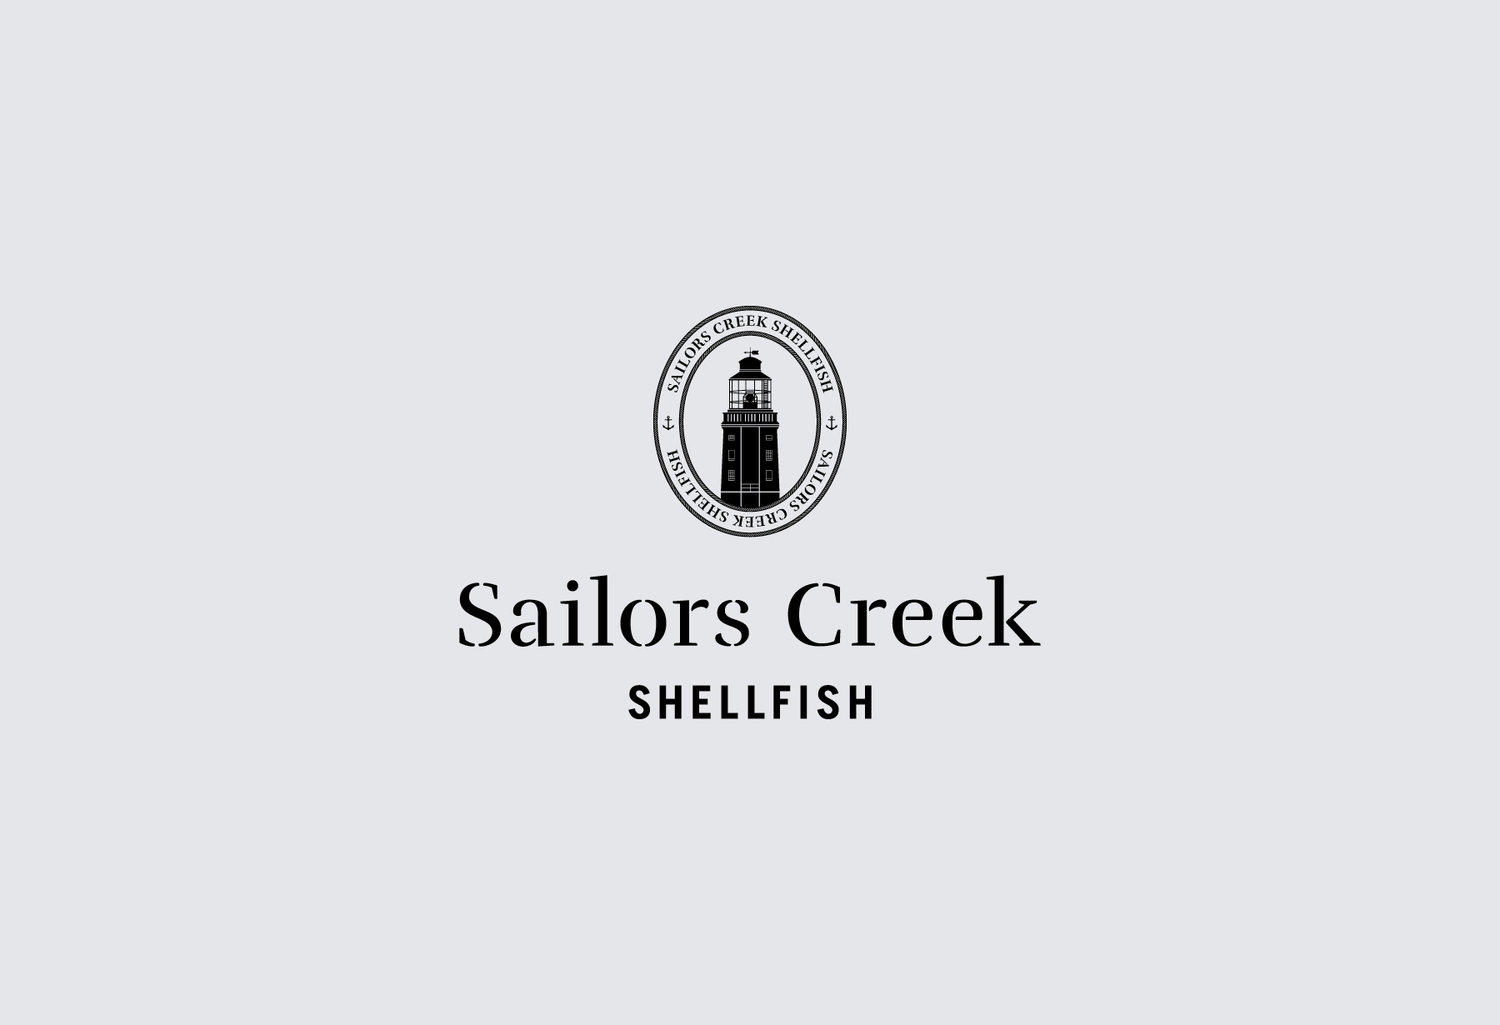 Sailors+creek_identity_logo_©Alan+Clarke-Symonds.jpg